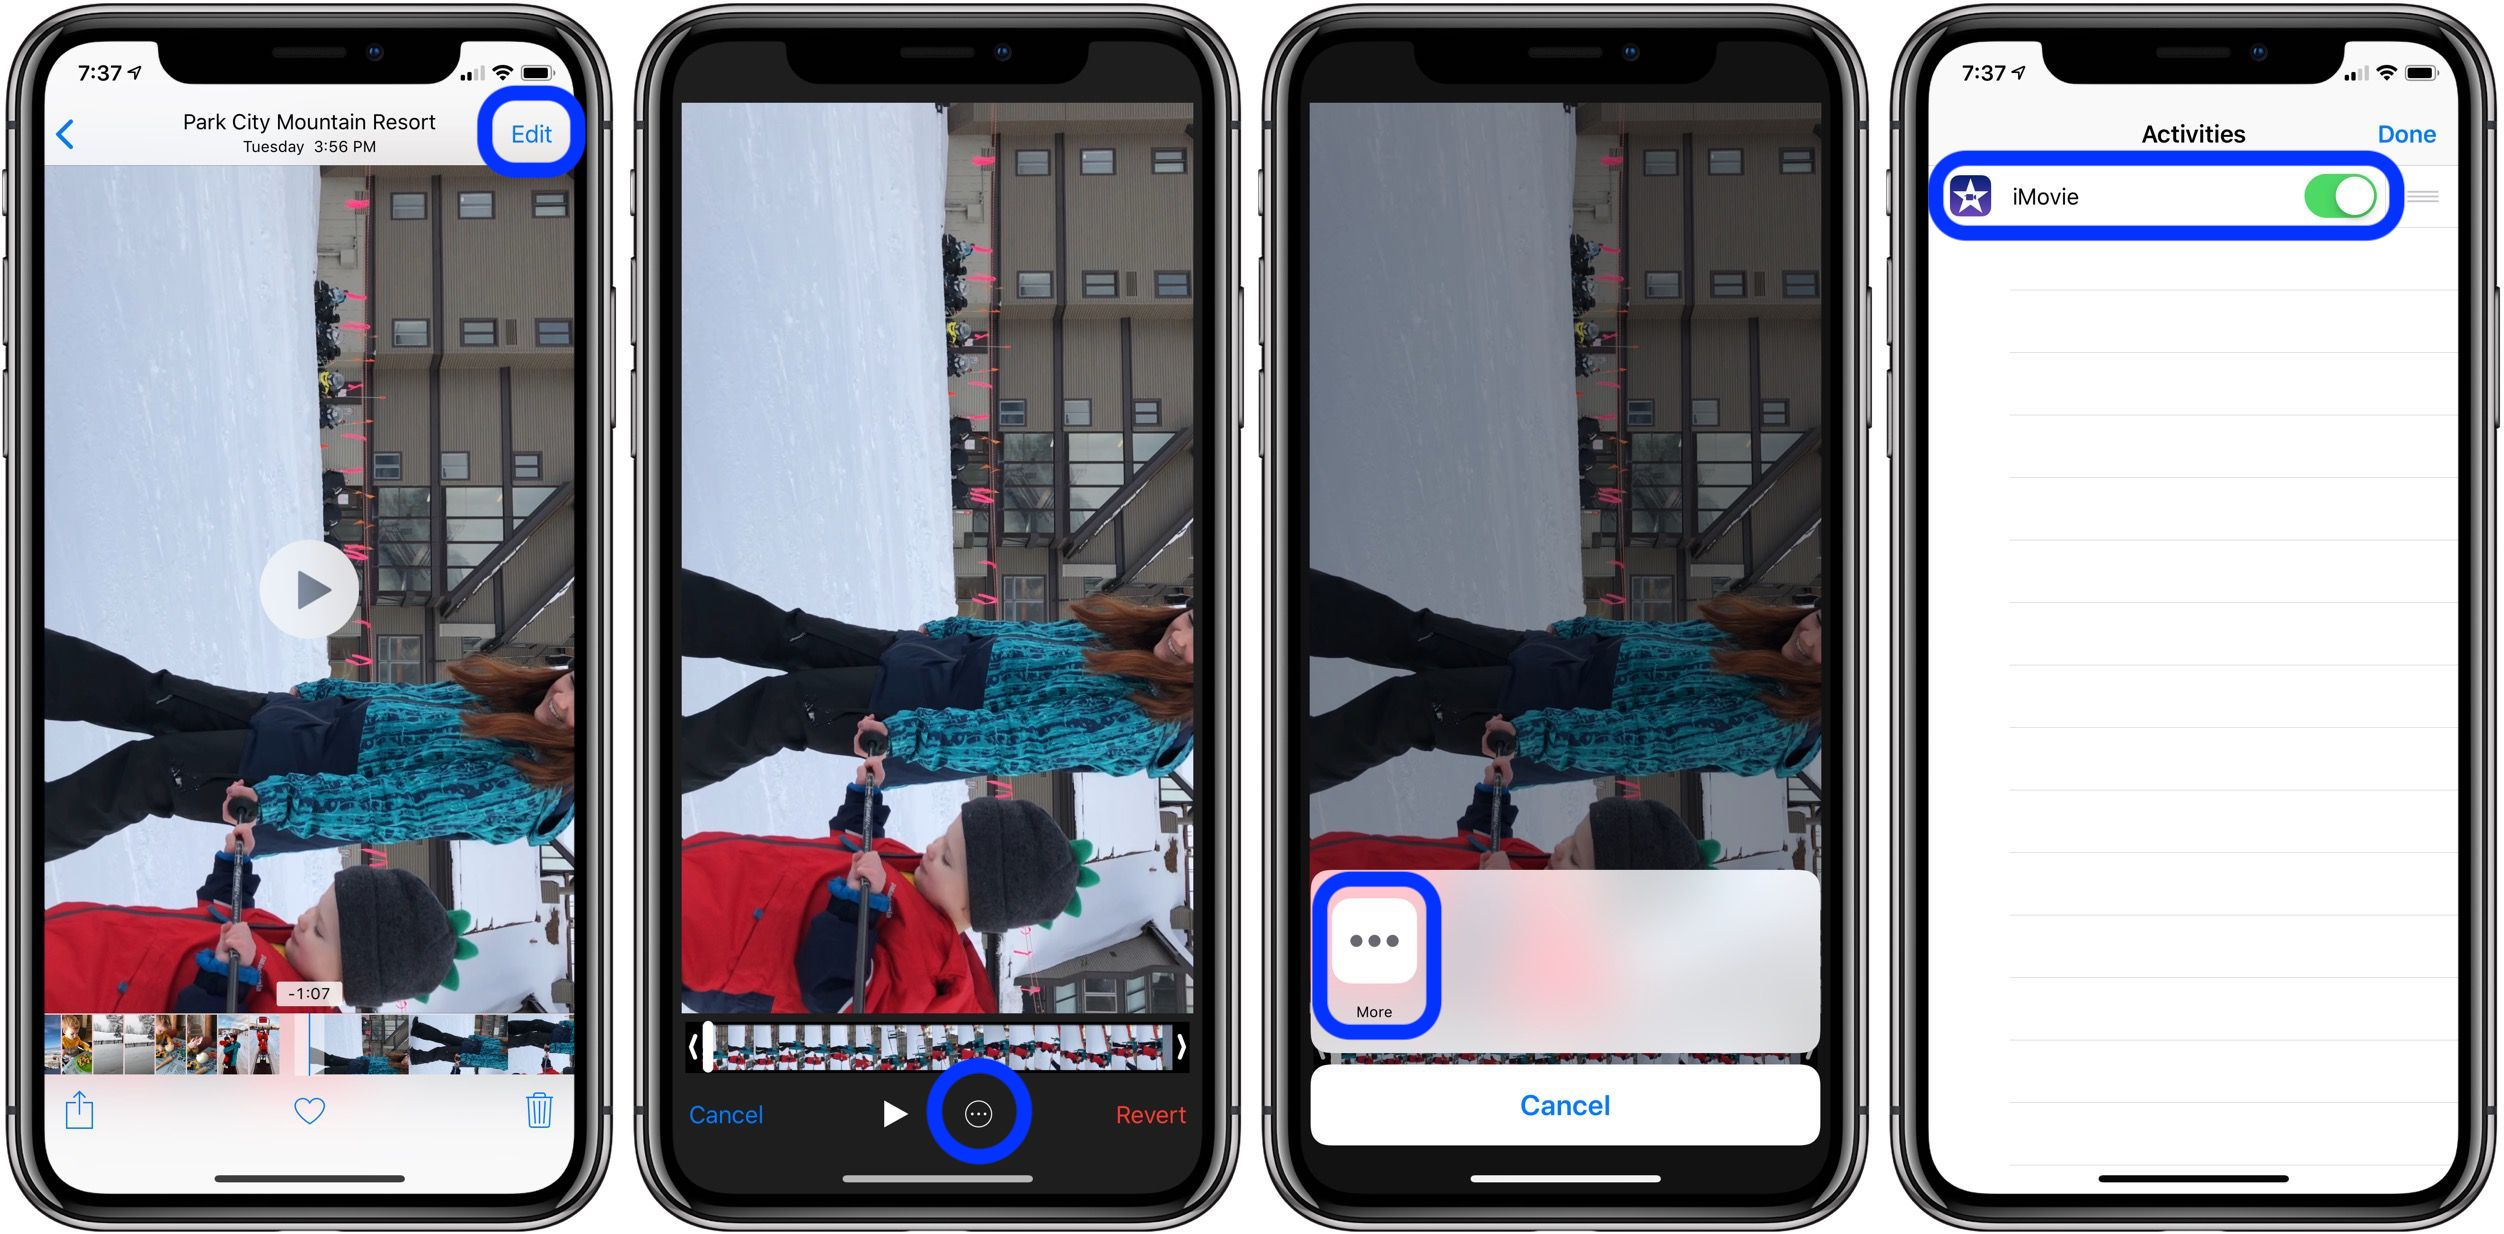 How to rotate iPhone and iPad videos taken in the wrong orientation